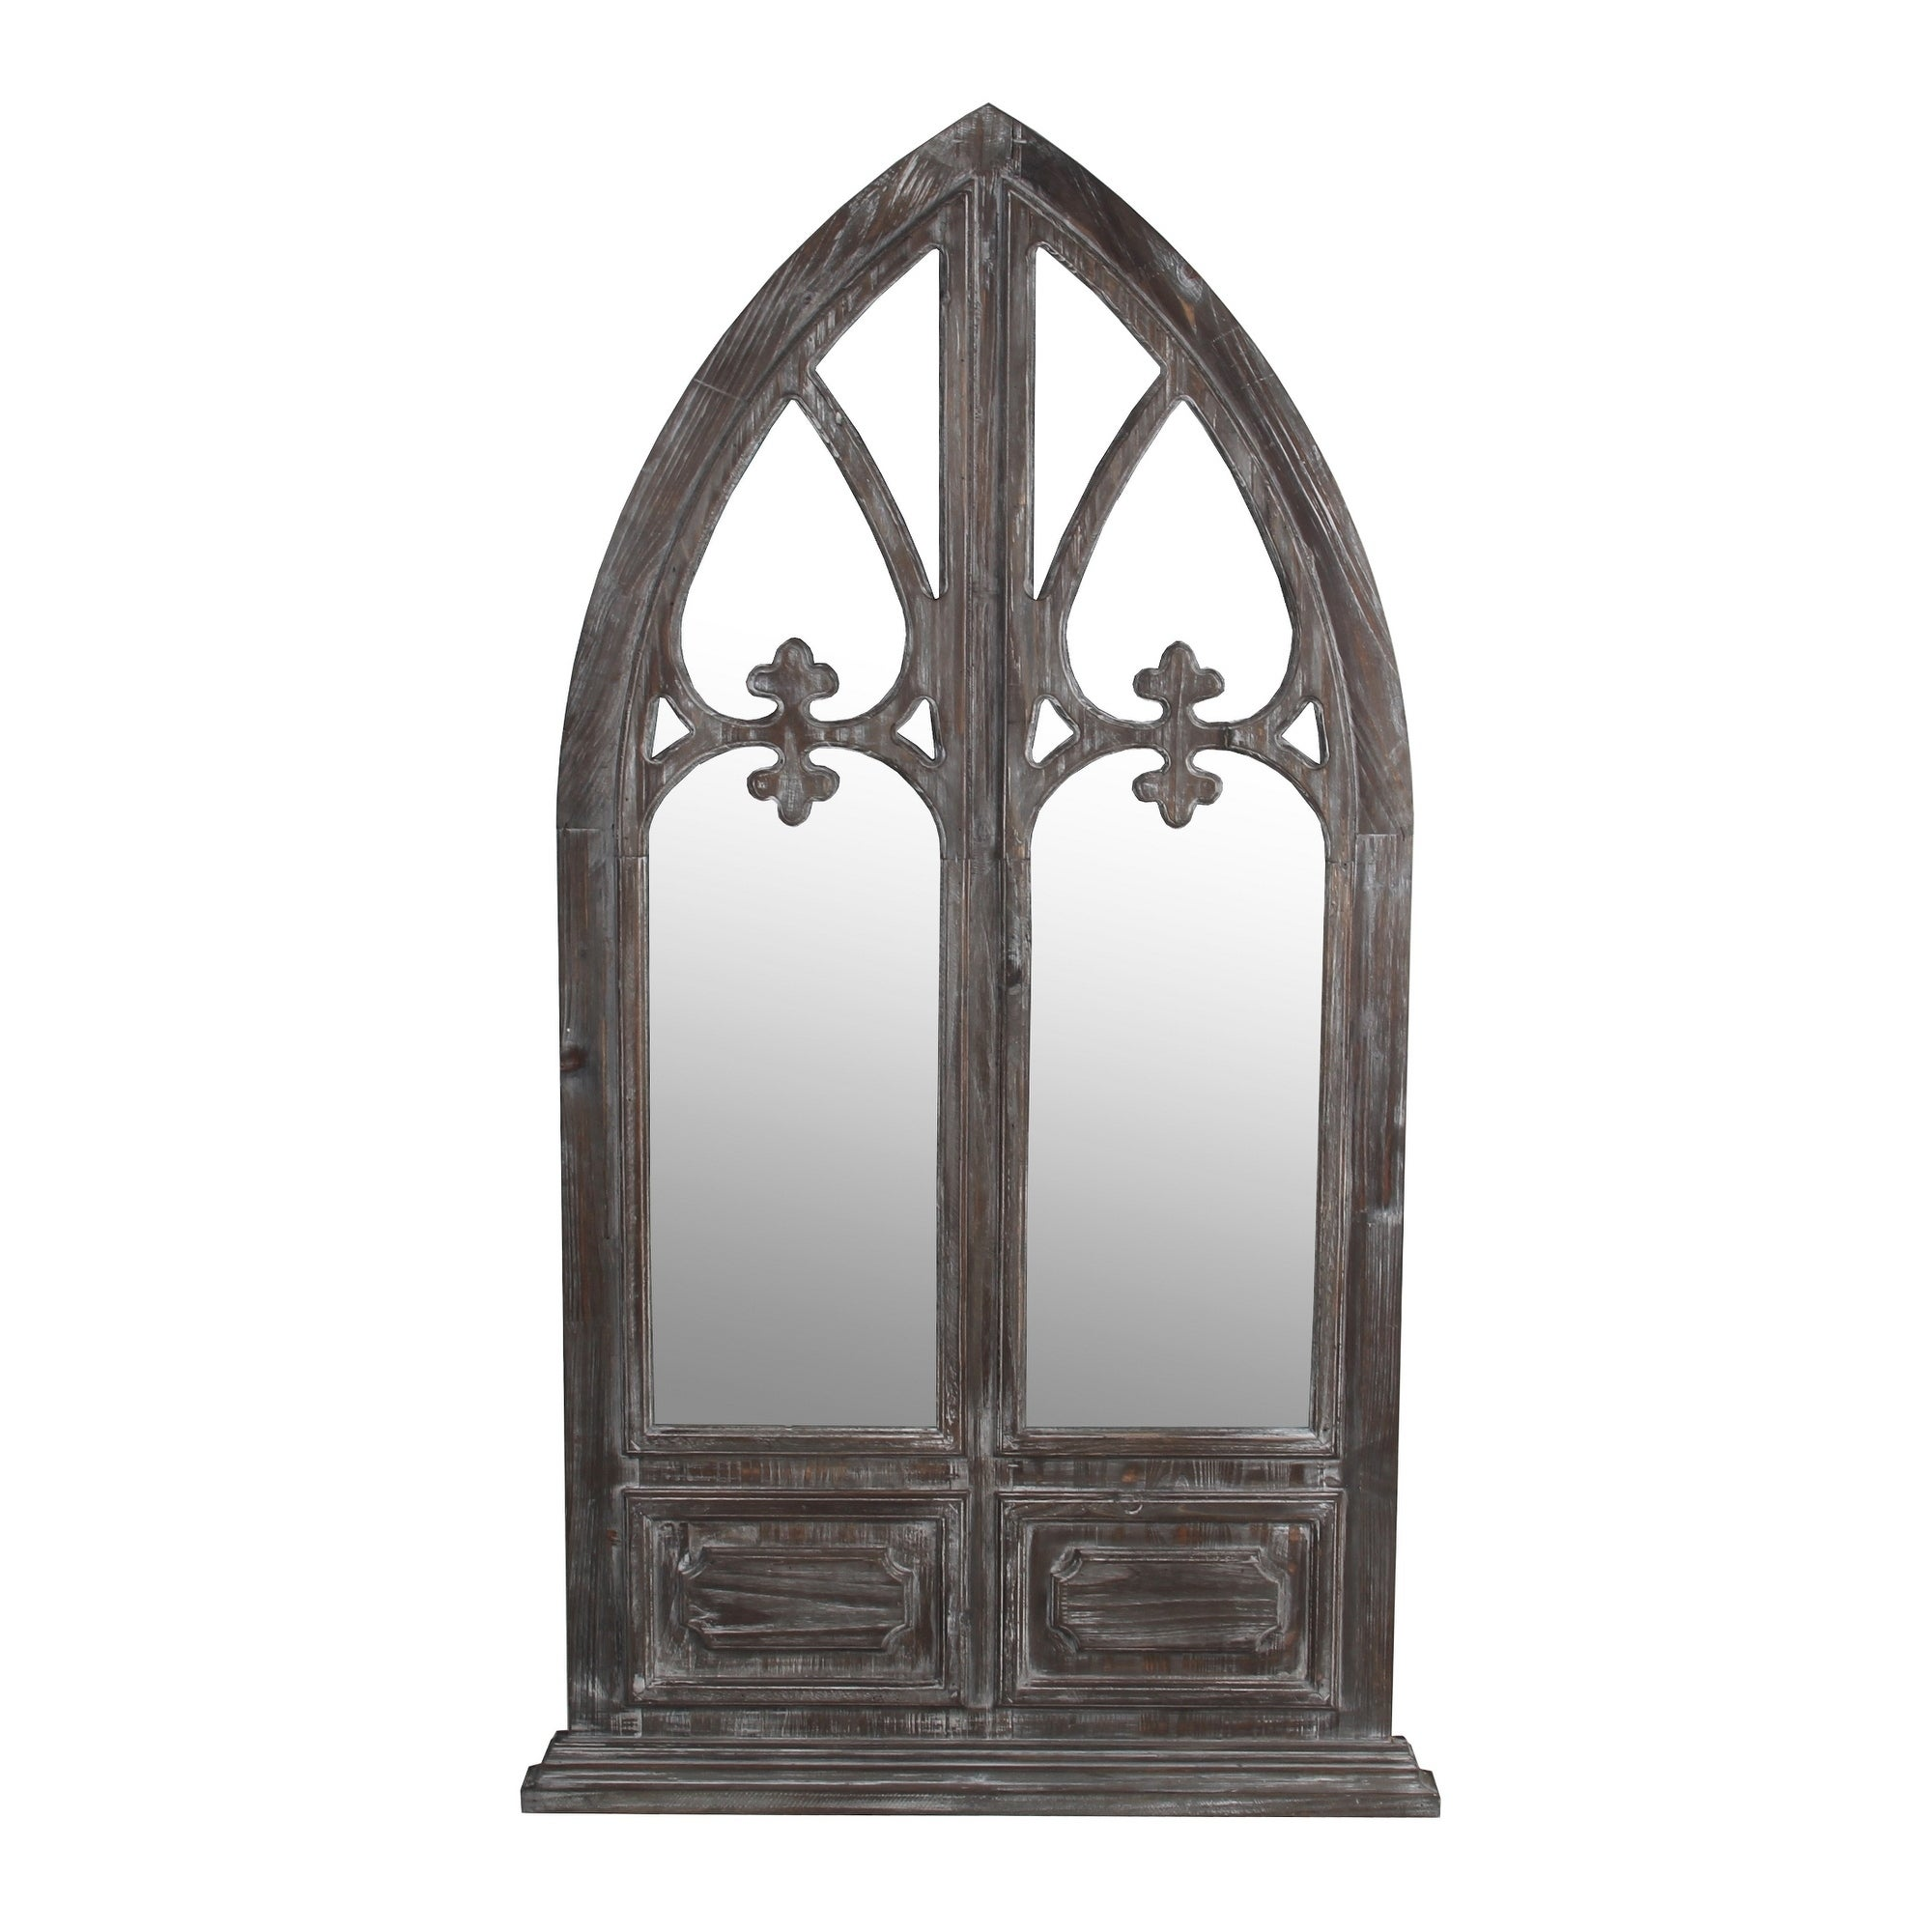 The Gray Barn Handmade Vintage-style Brown Dome Mirror